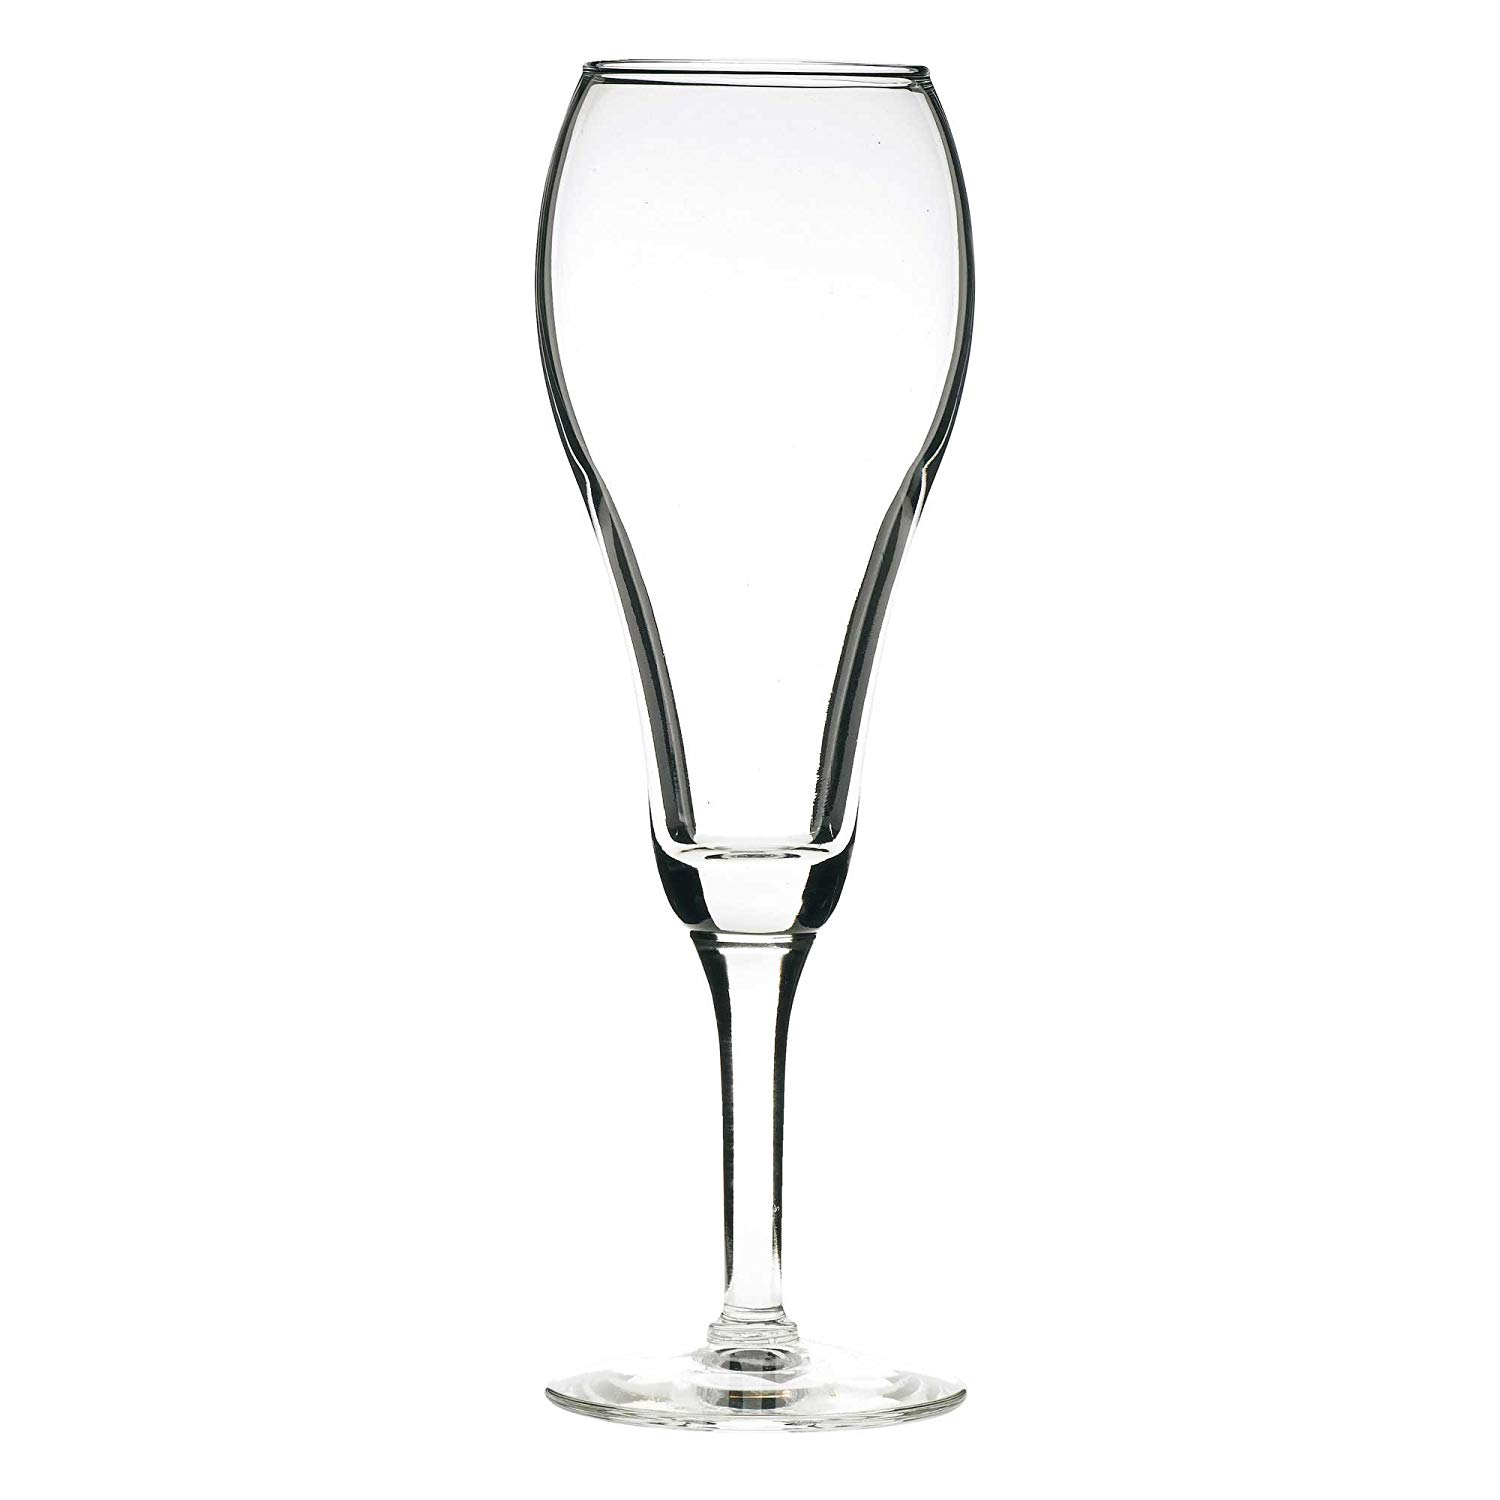 Libbey Glassware (8476) - 9 oz Citation Gourmet Tulip Champagne Glass